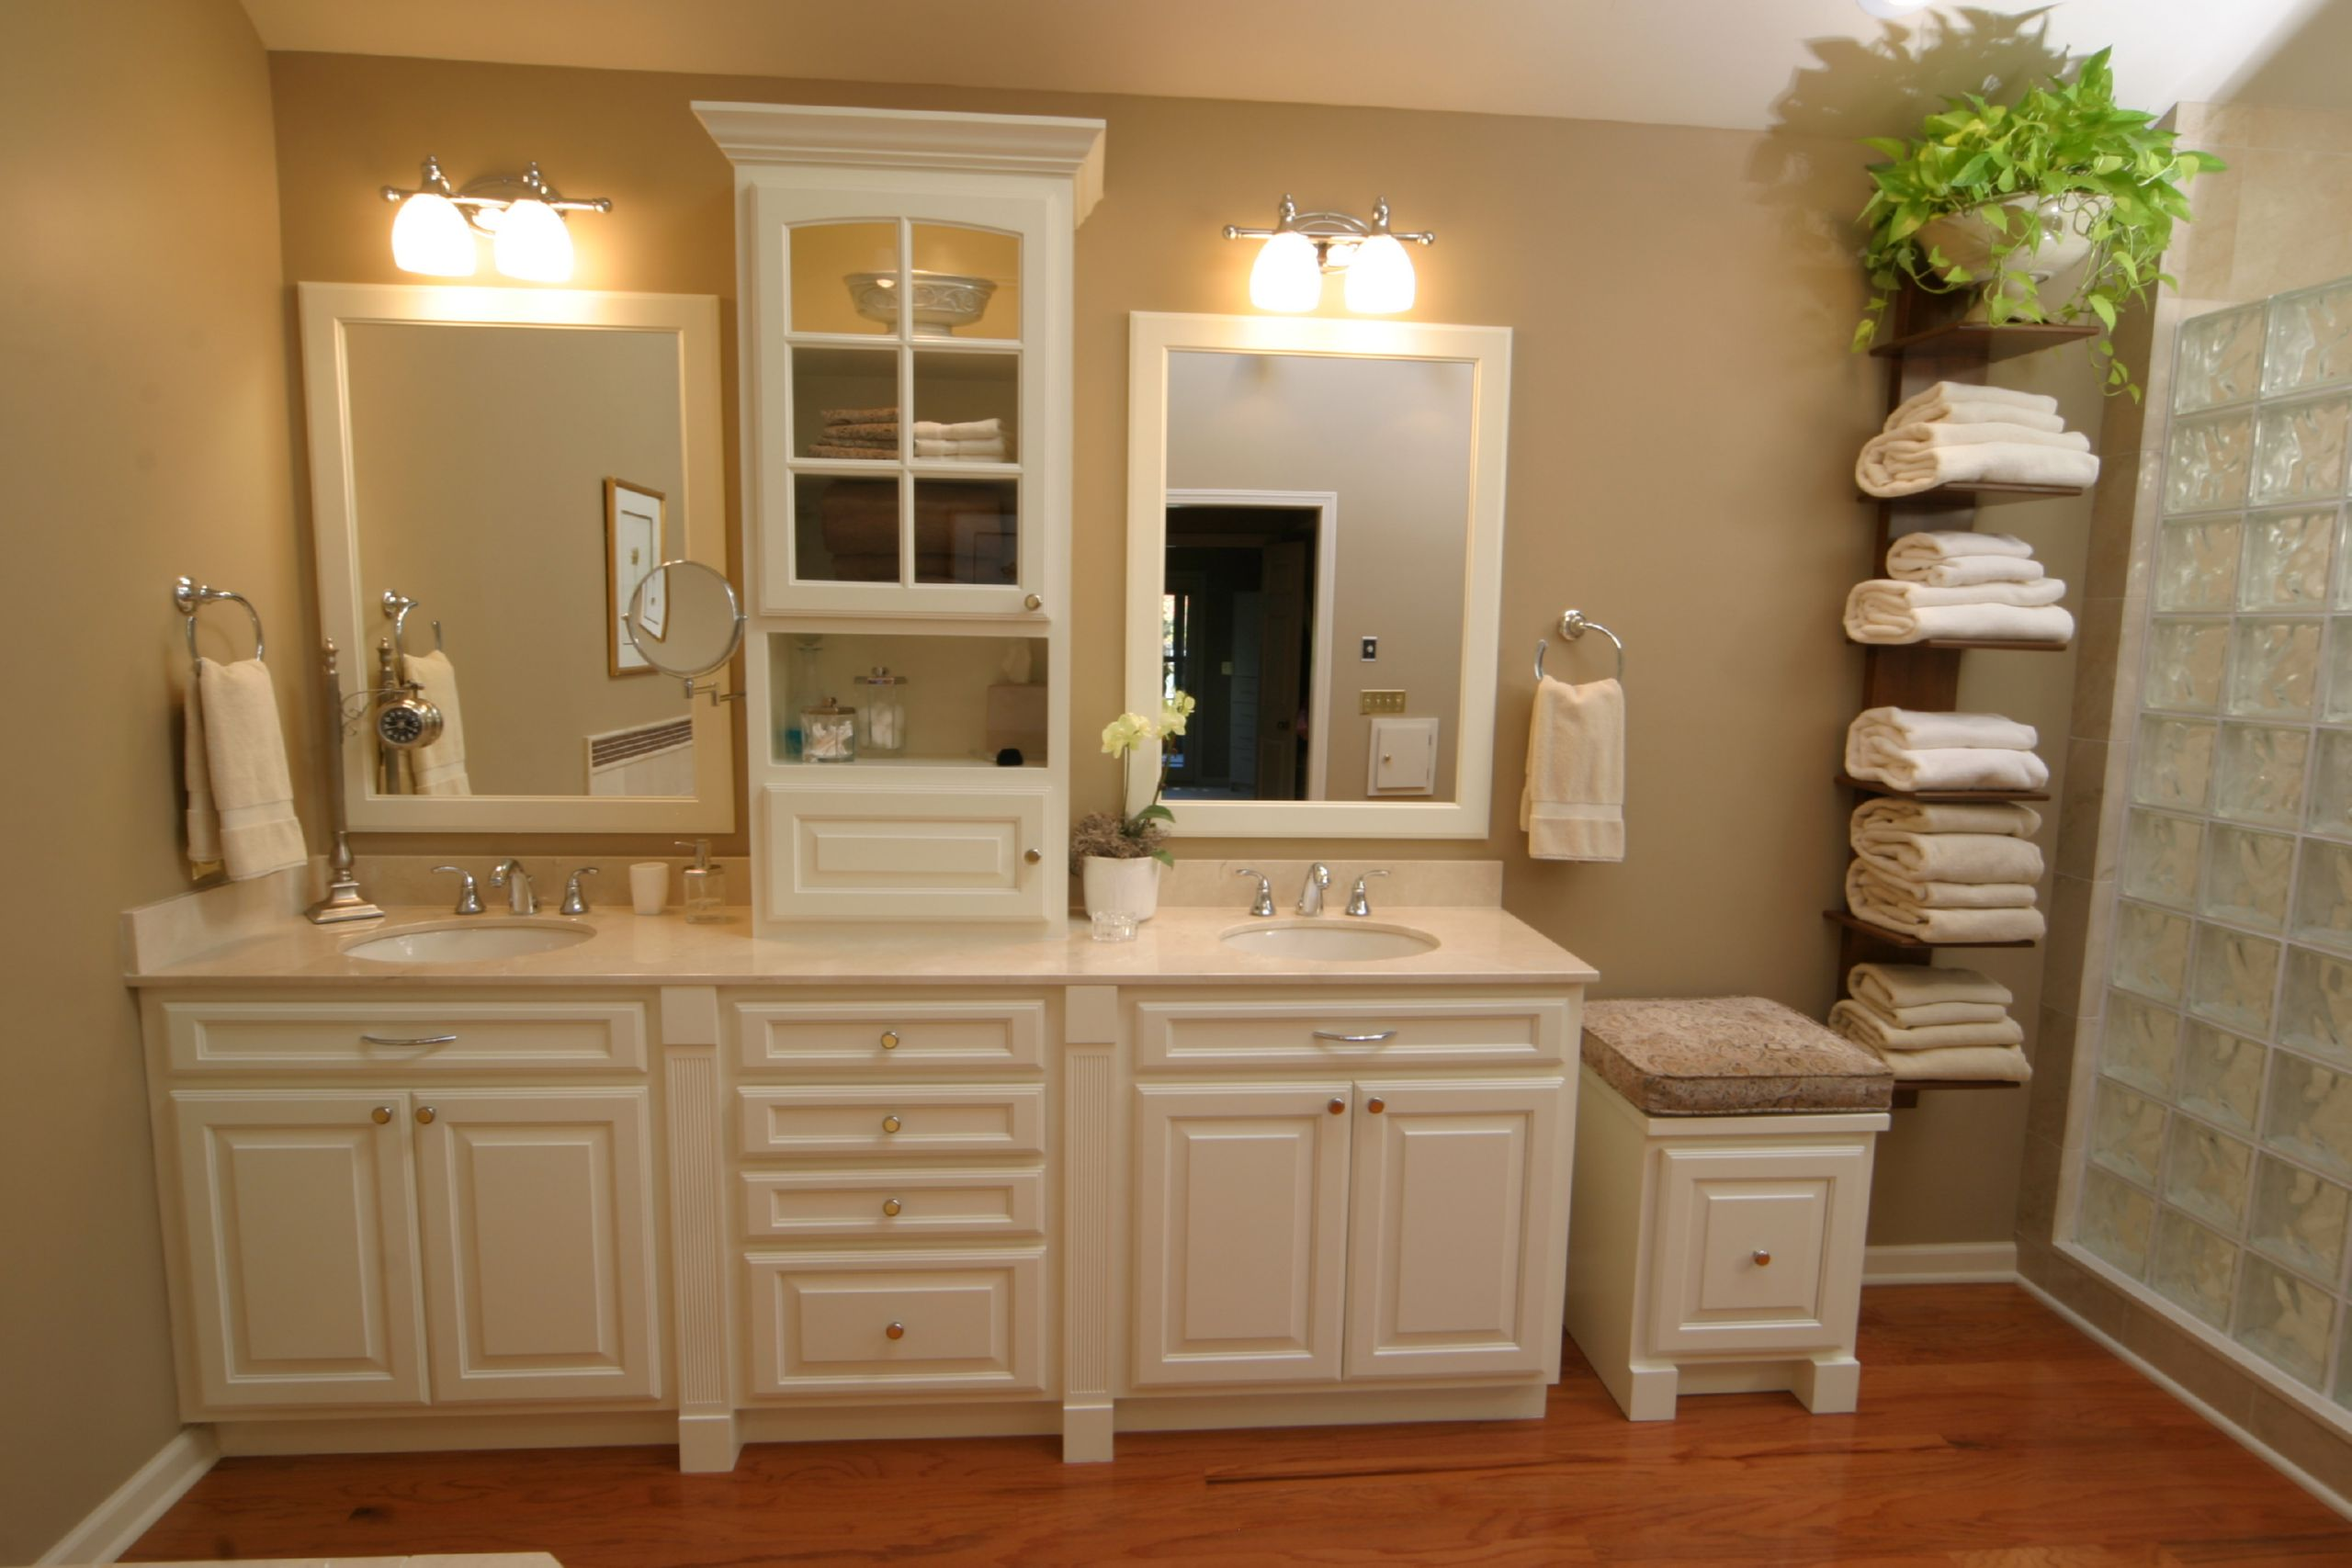 Bathroom remodeling bath remodel contractor for Bathroom remodel ideas with bathtub